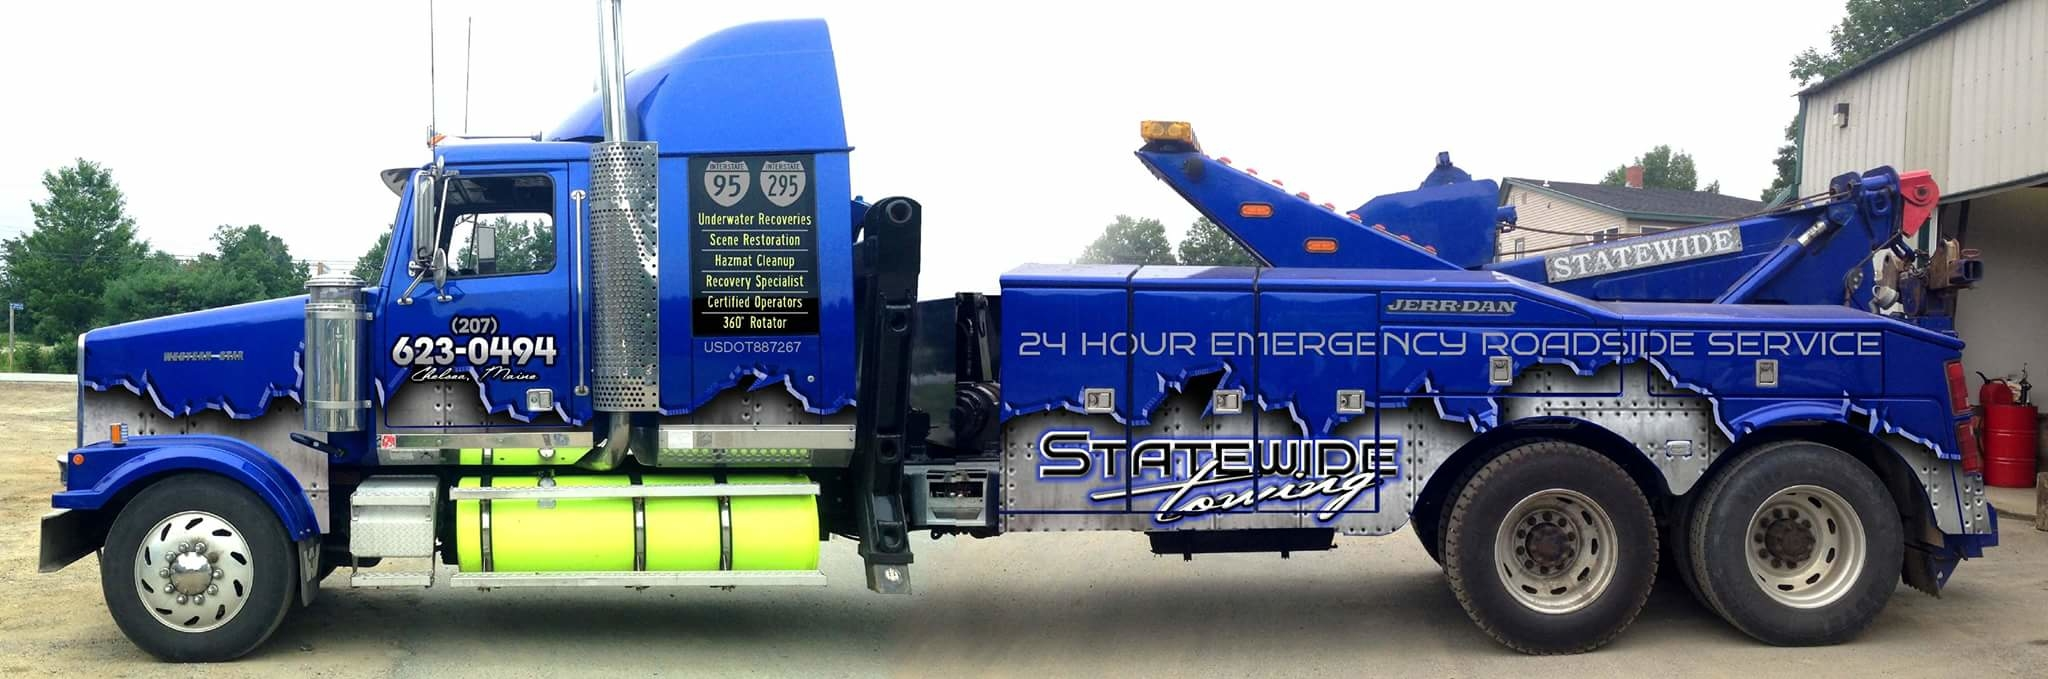 Statewide Towing Inc. image 6